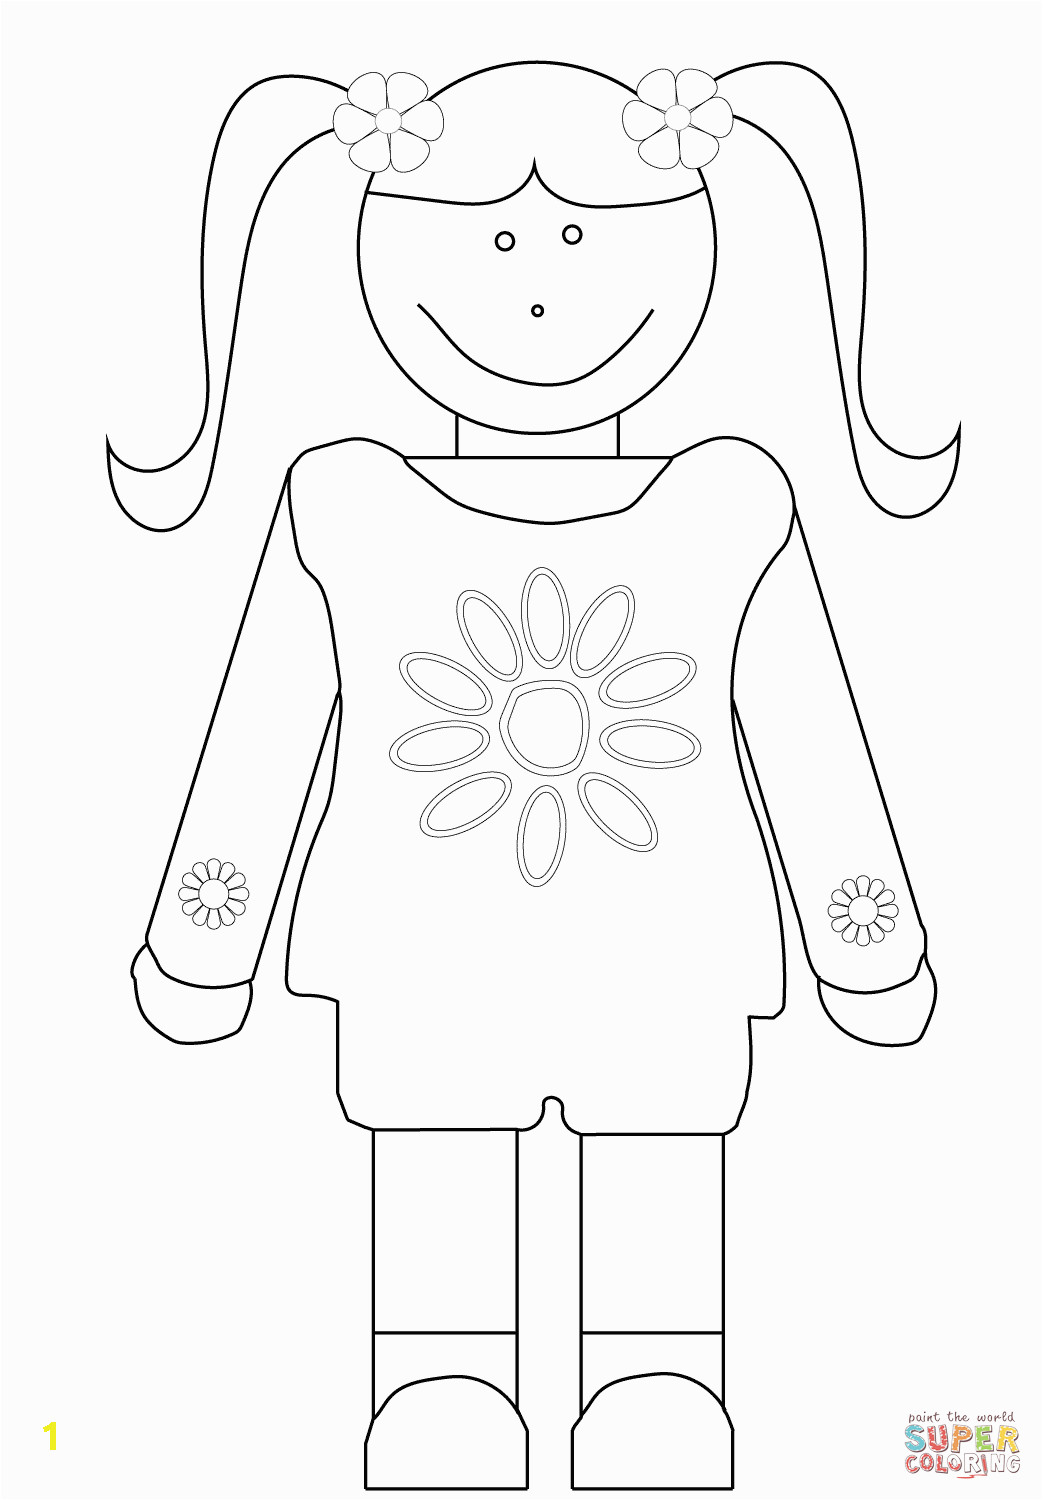 daisy girl scout